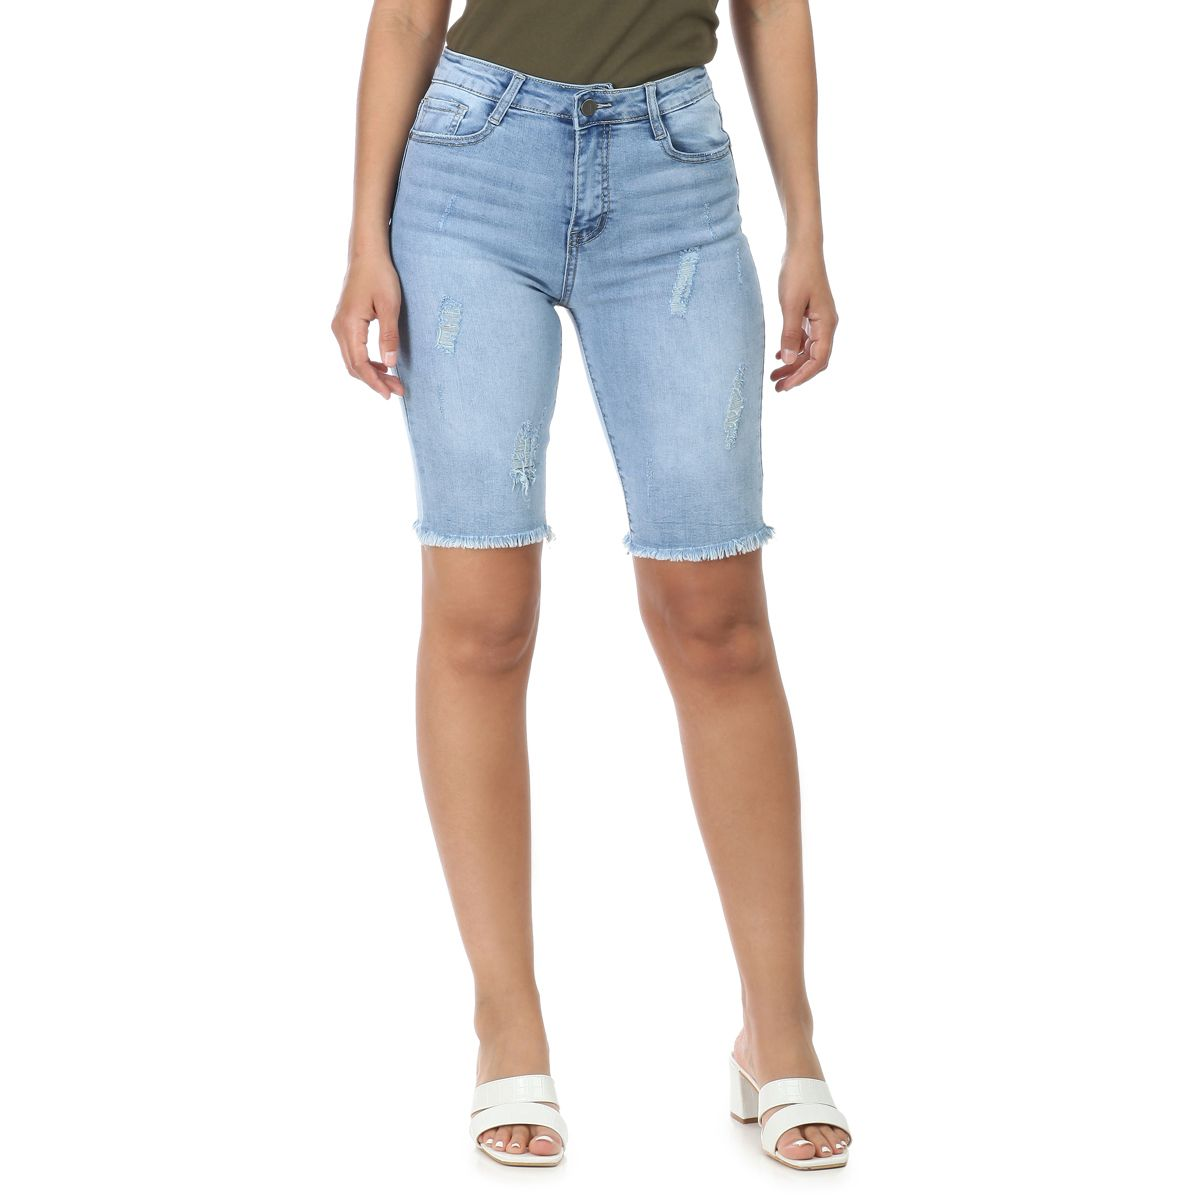 Short en jean bleu clair mi-long